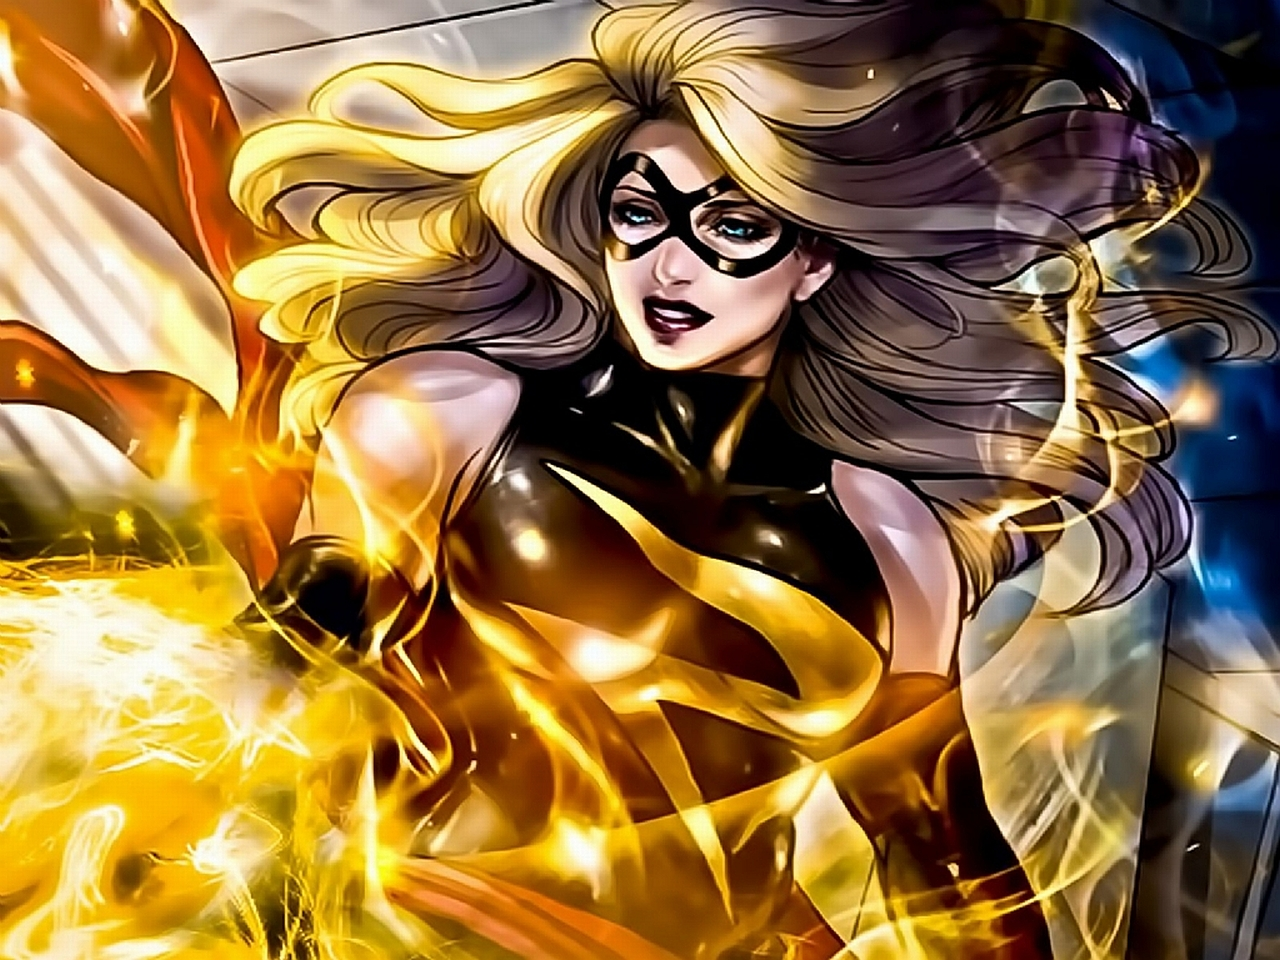 Ms Marvel Computer Wallpapers Desktop Backgrounds 1280x960 ID 1280x960